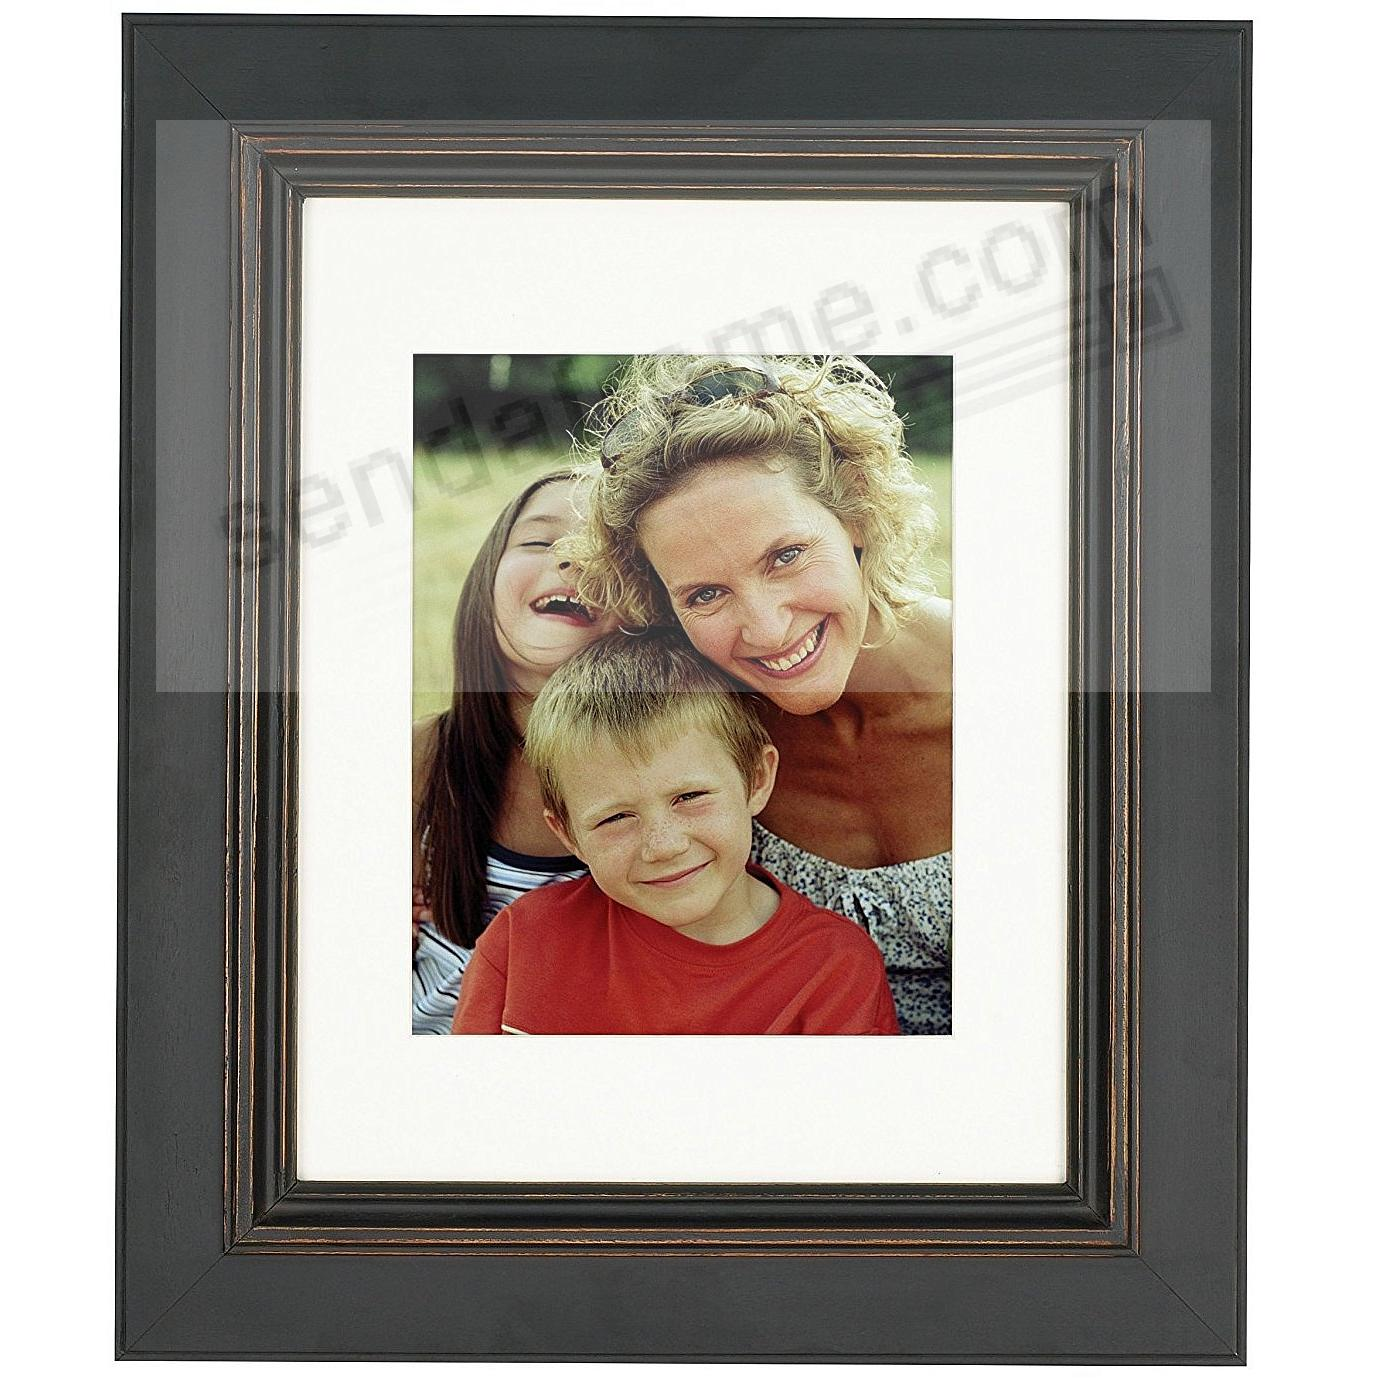 BLACK/brown PALLADIO matted wood frame for a 5x7 / 8x10 print from ARTCARE® by Nielsen®